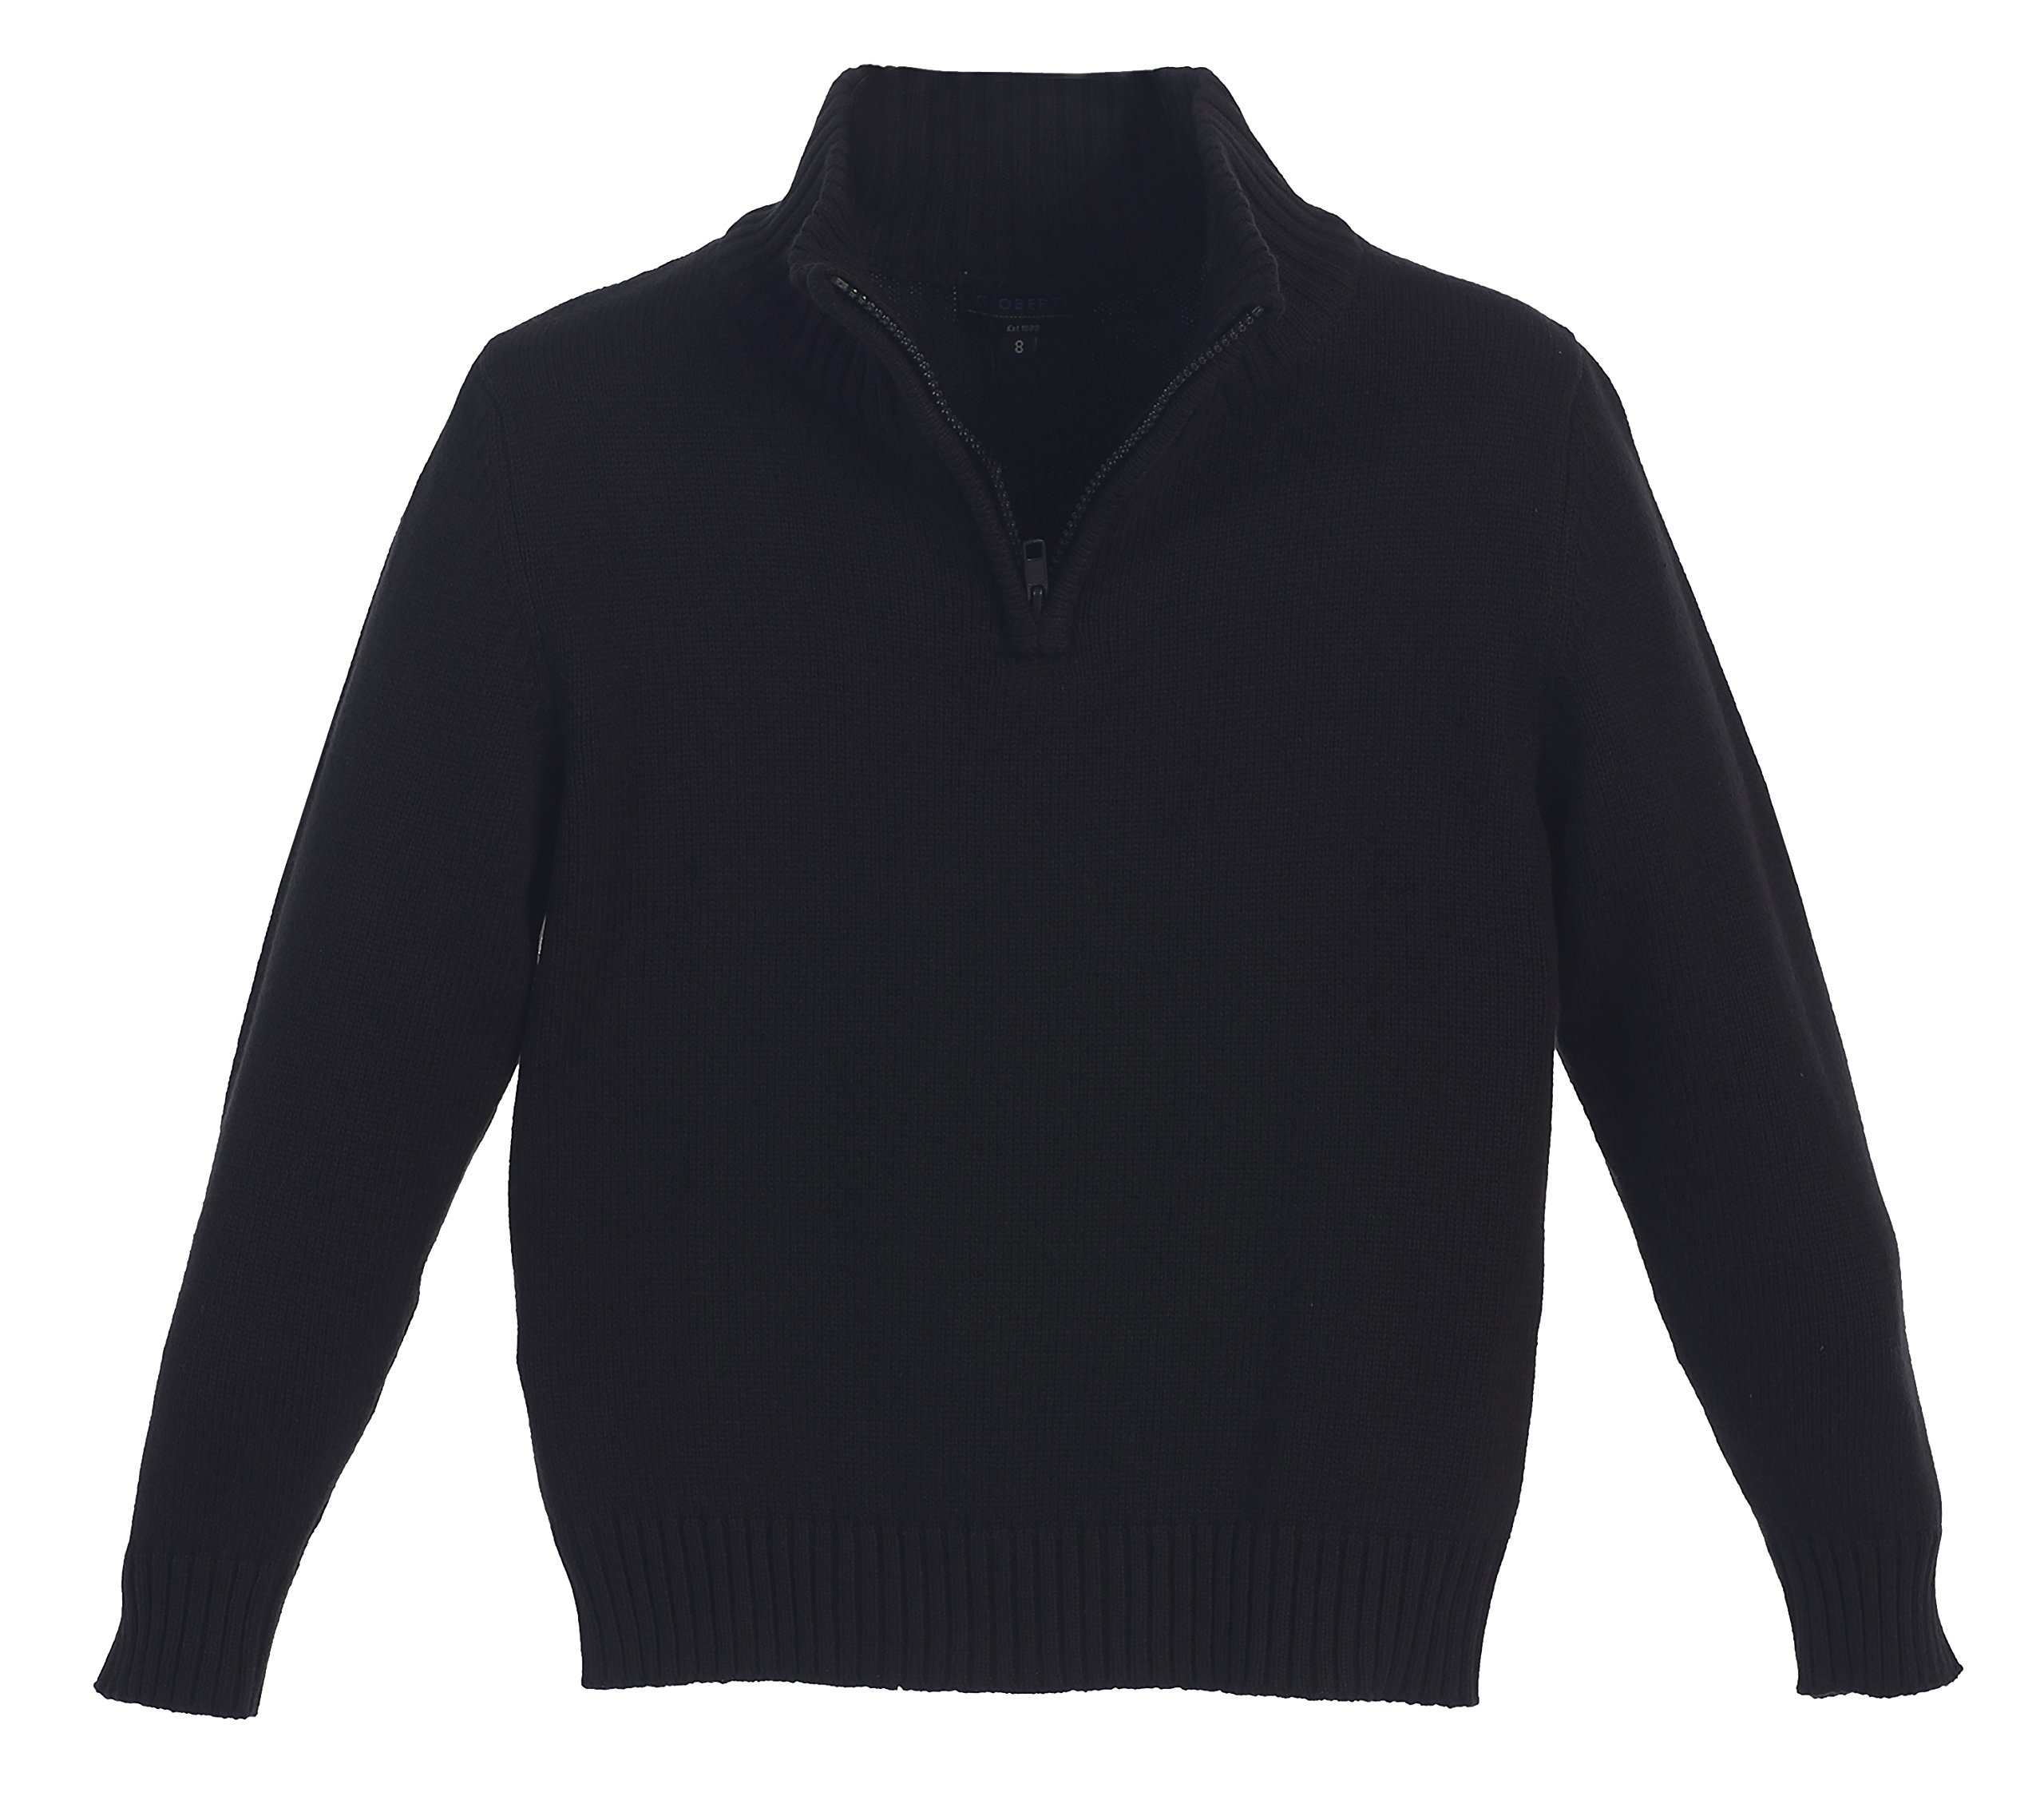 Gioberti Boy's Knitted Half Zip 100% Cotton Sweater, Black, Size 14